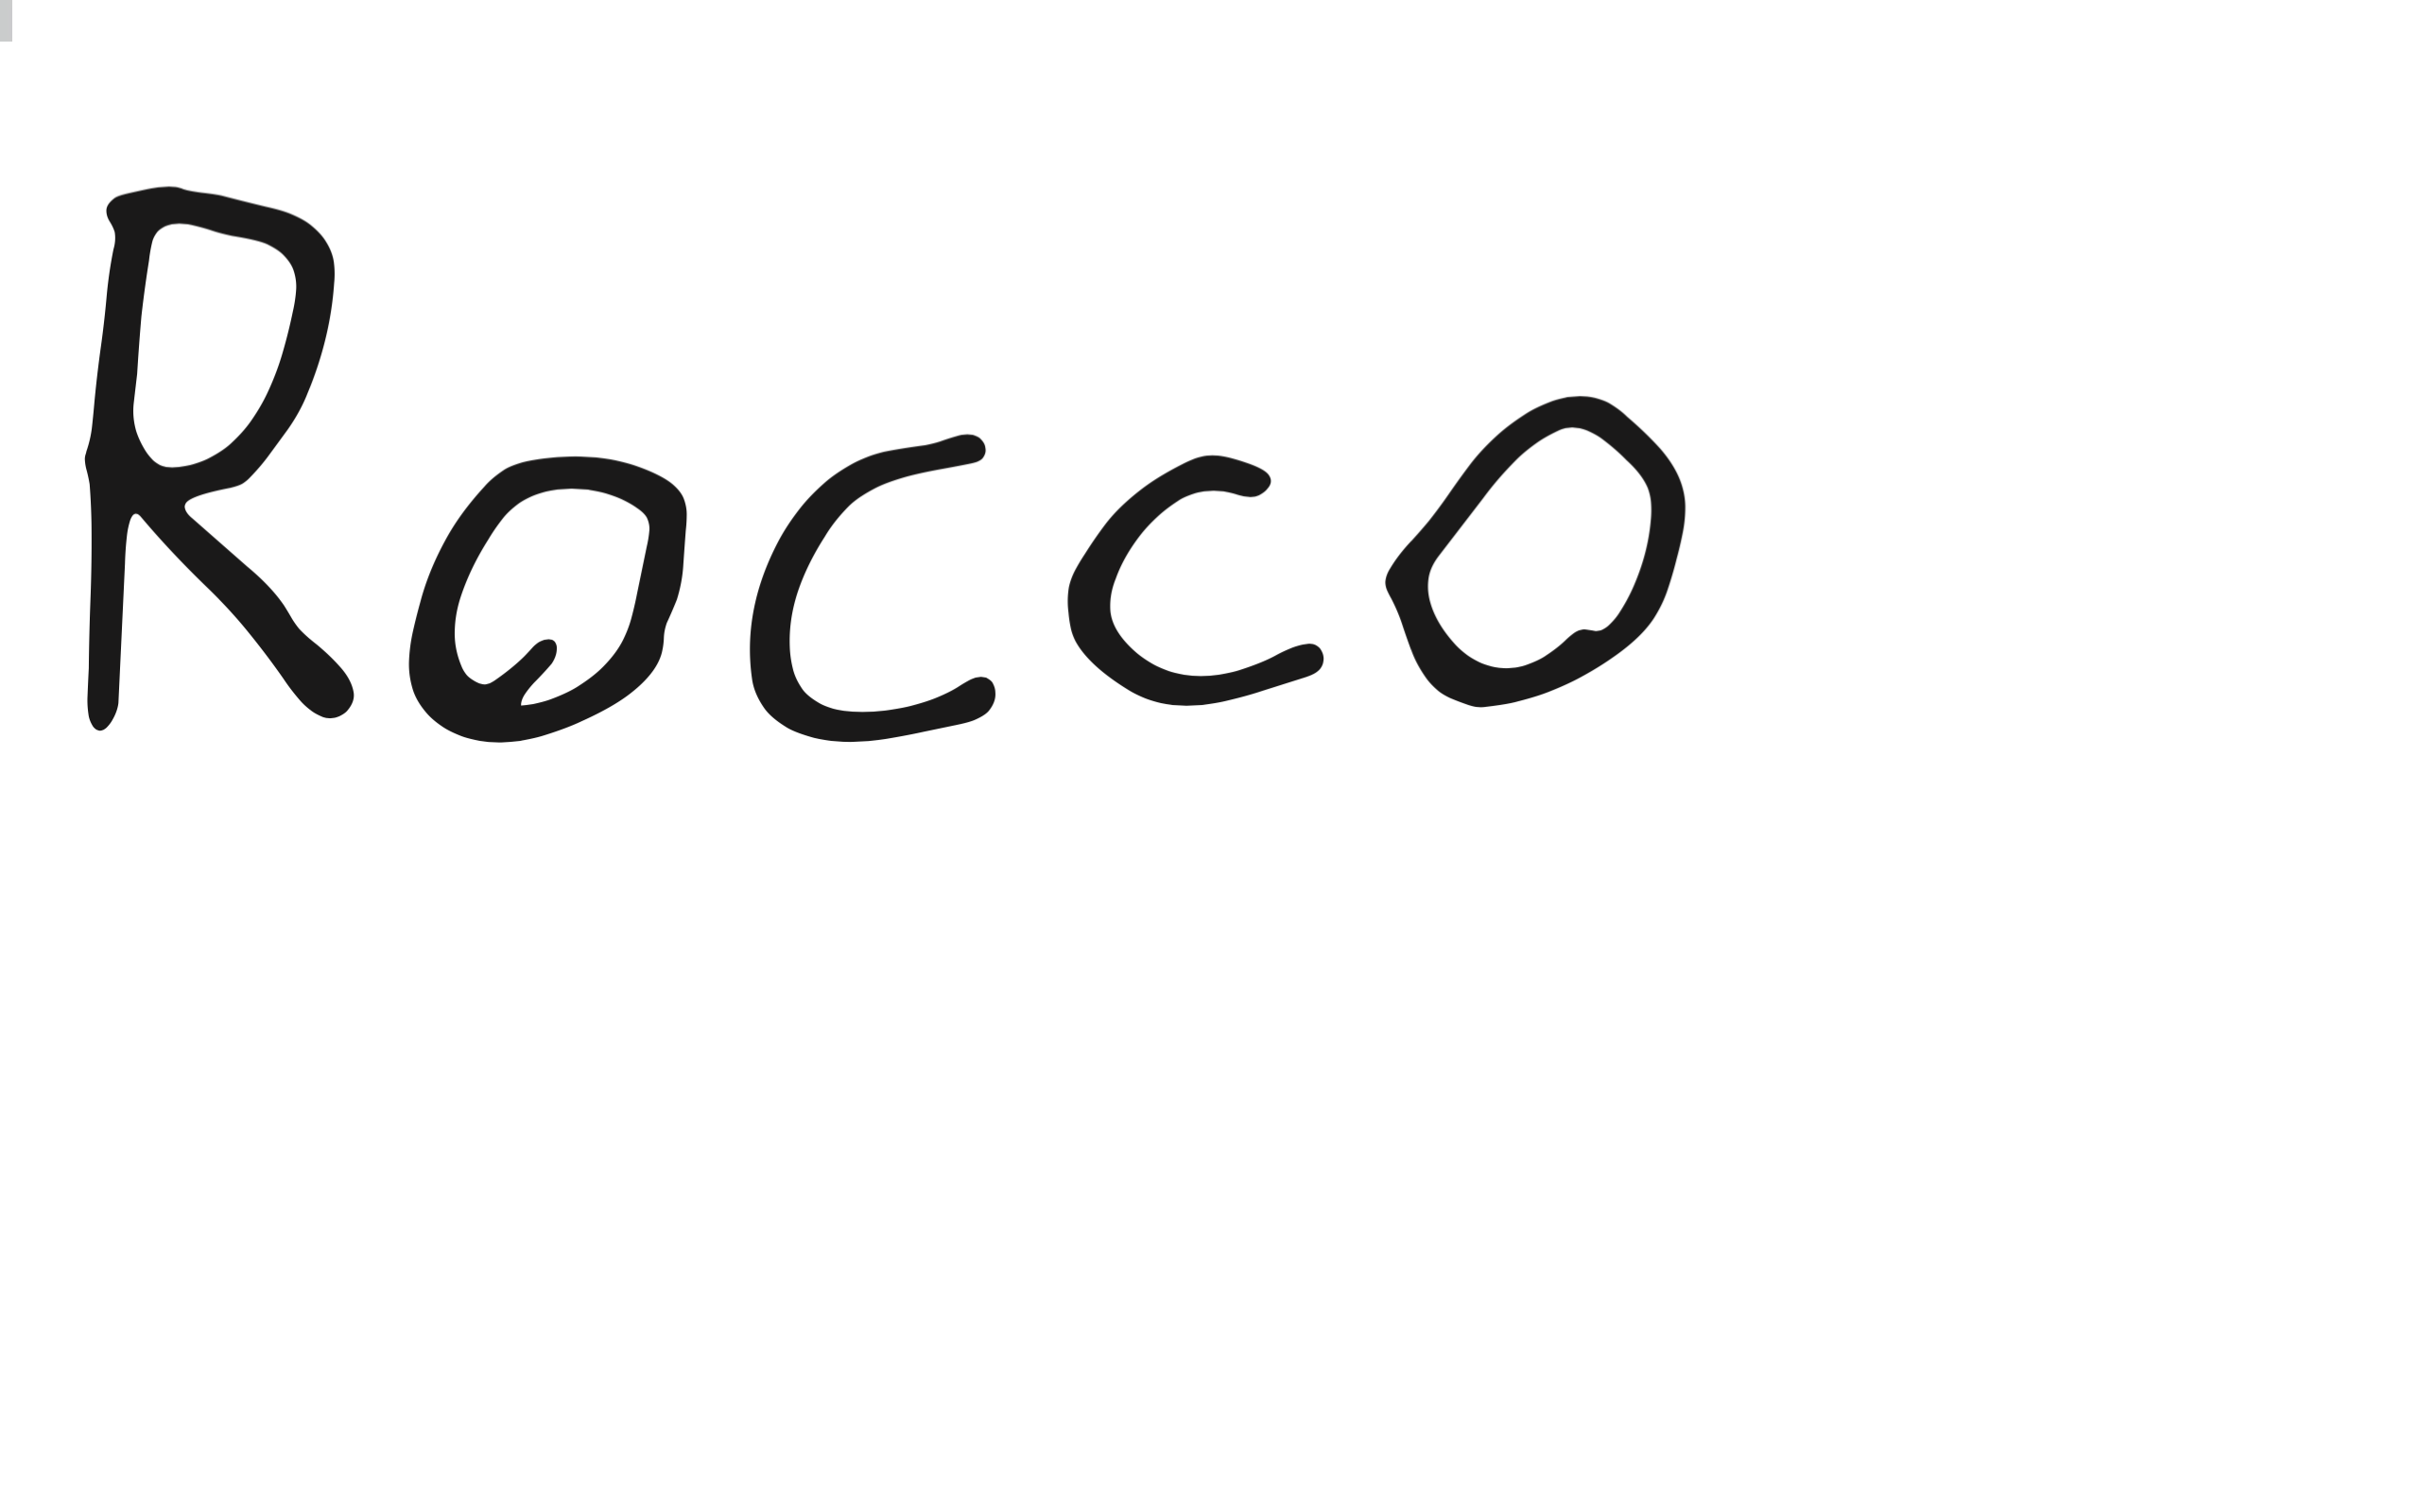 Rocco's Online Store